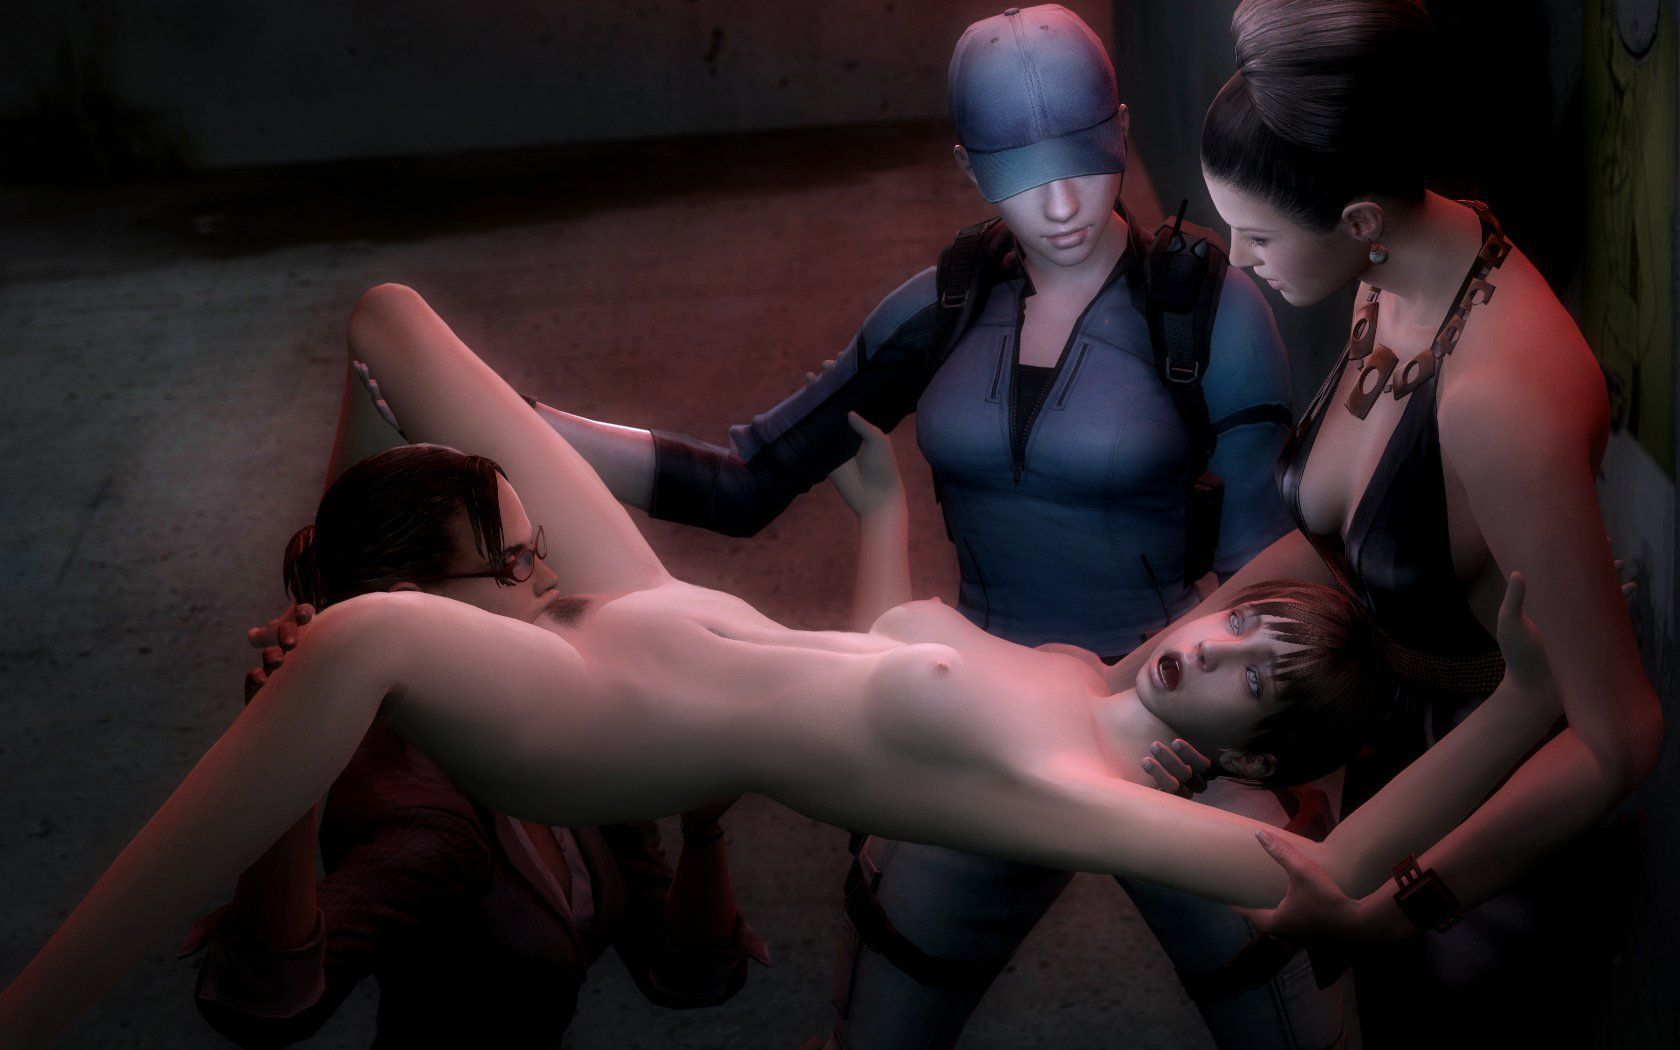 Resident evil girls porn and fucking pic healthy!